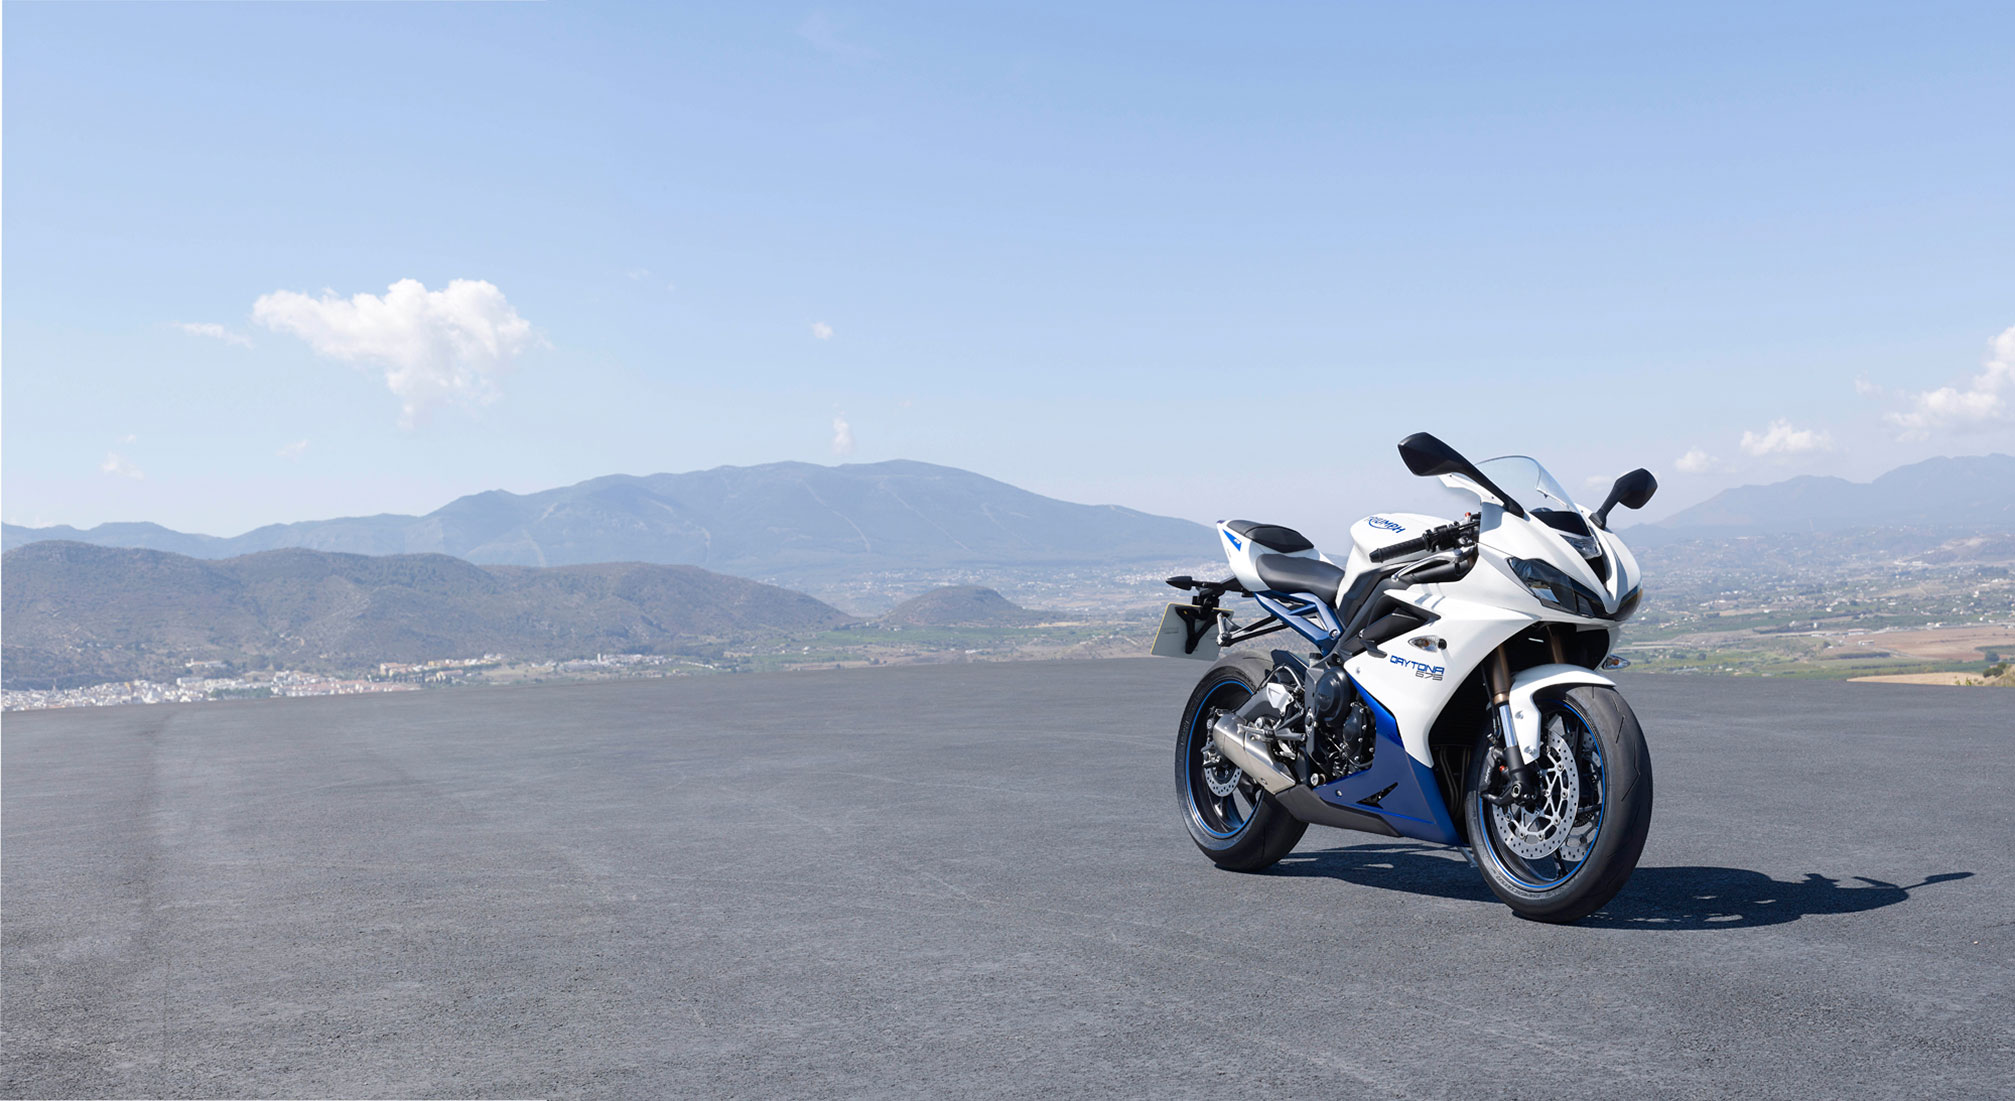 2015 Triumph Daytona 675 Abs Review